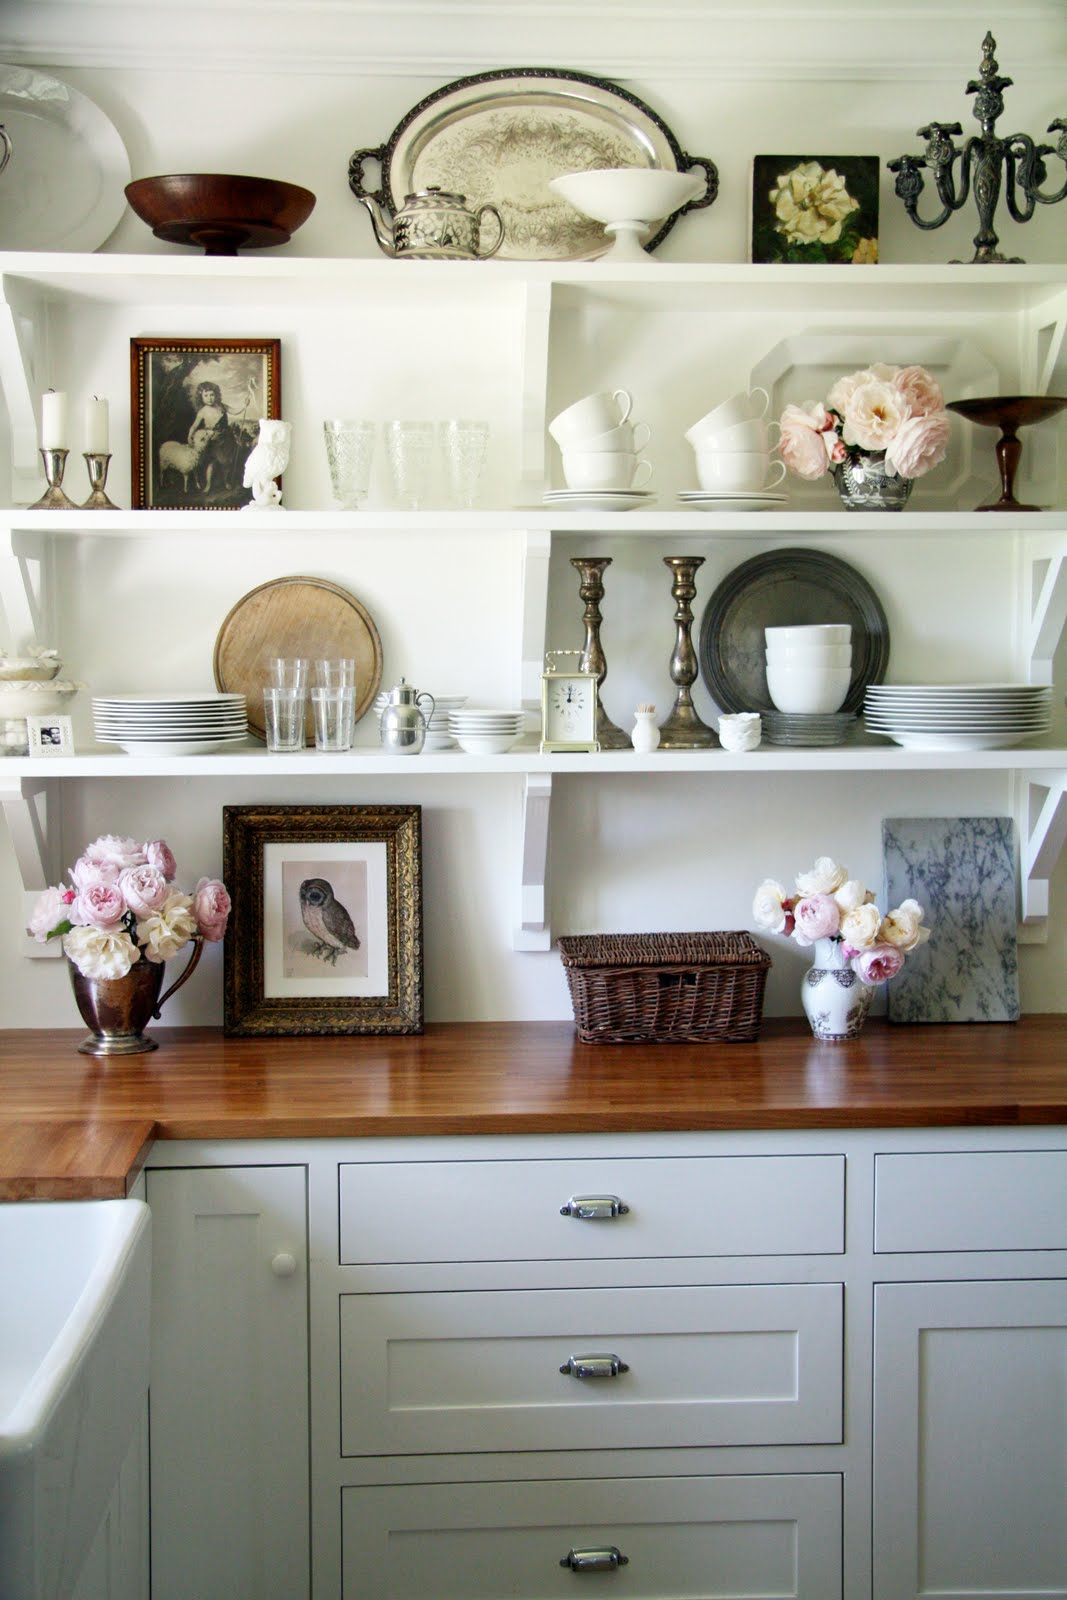 shabby chic kitchen shelving idea for ideal space saver | homesfeed